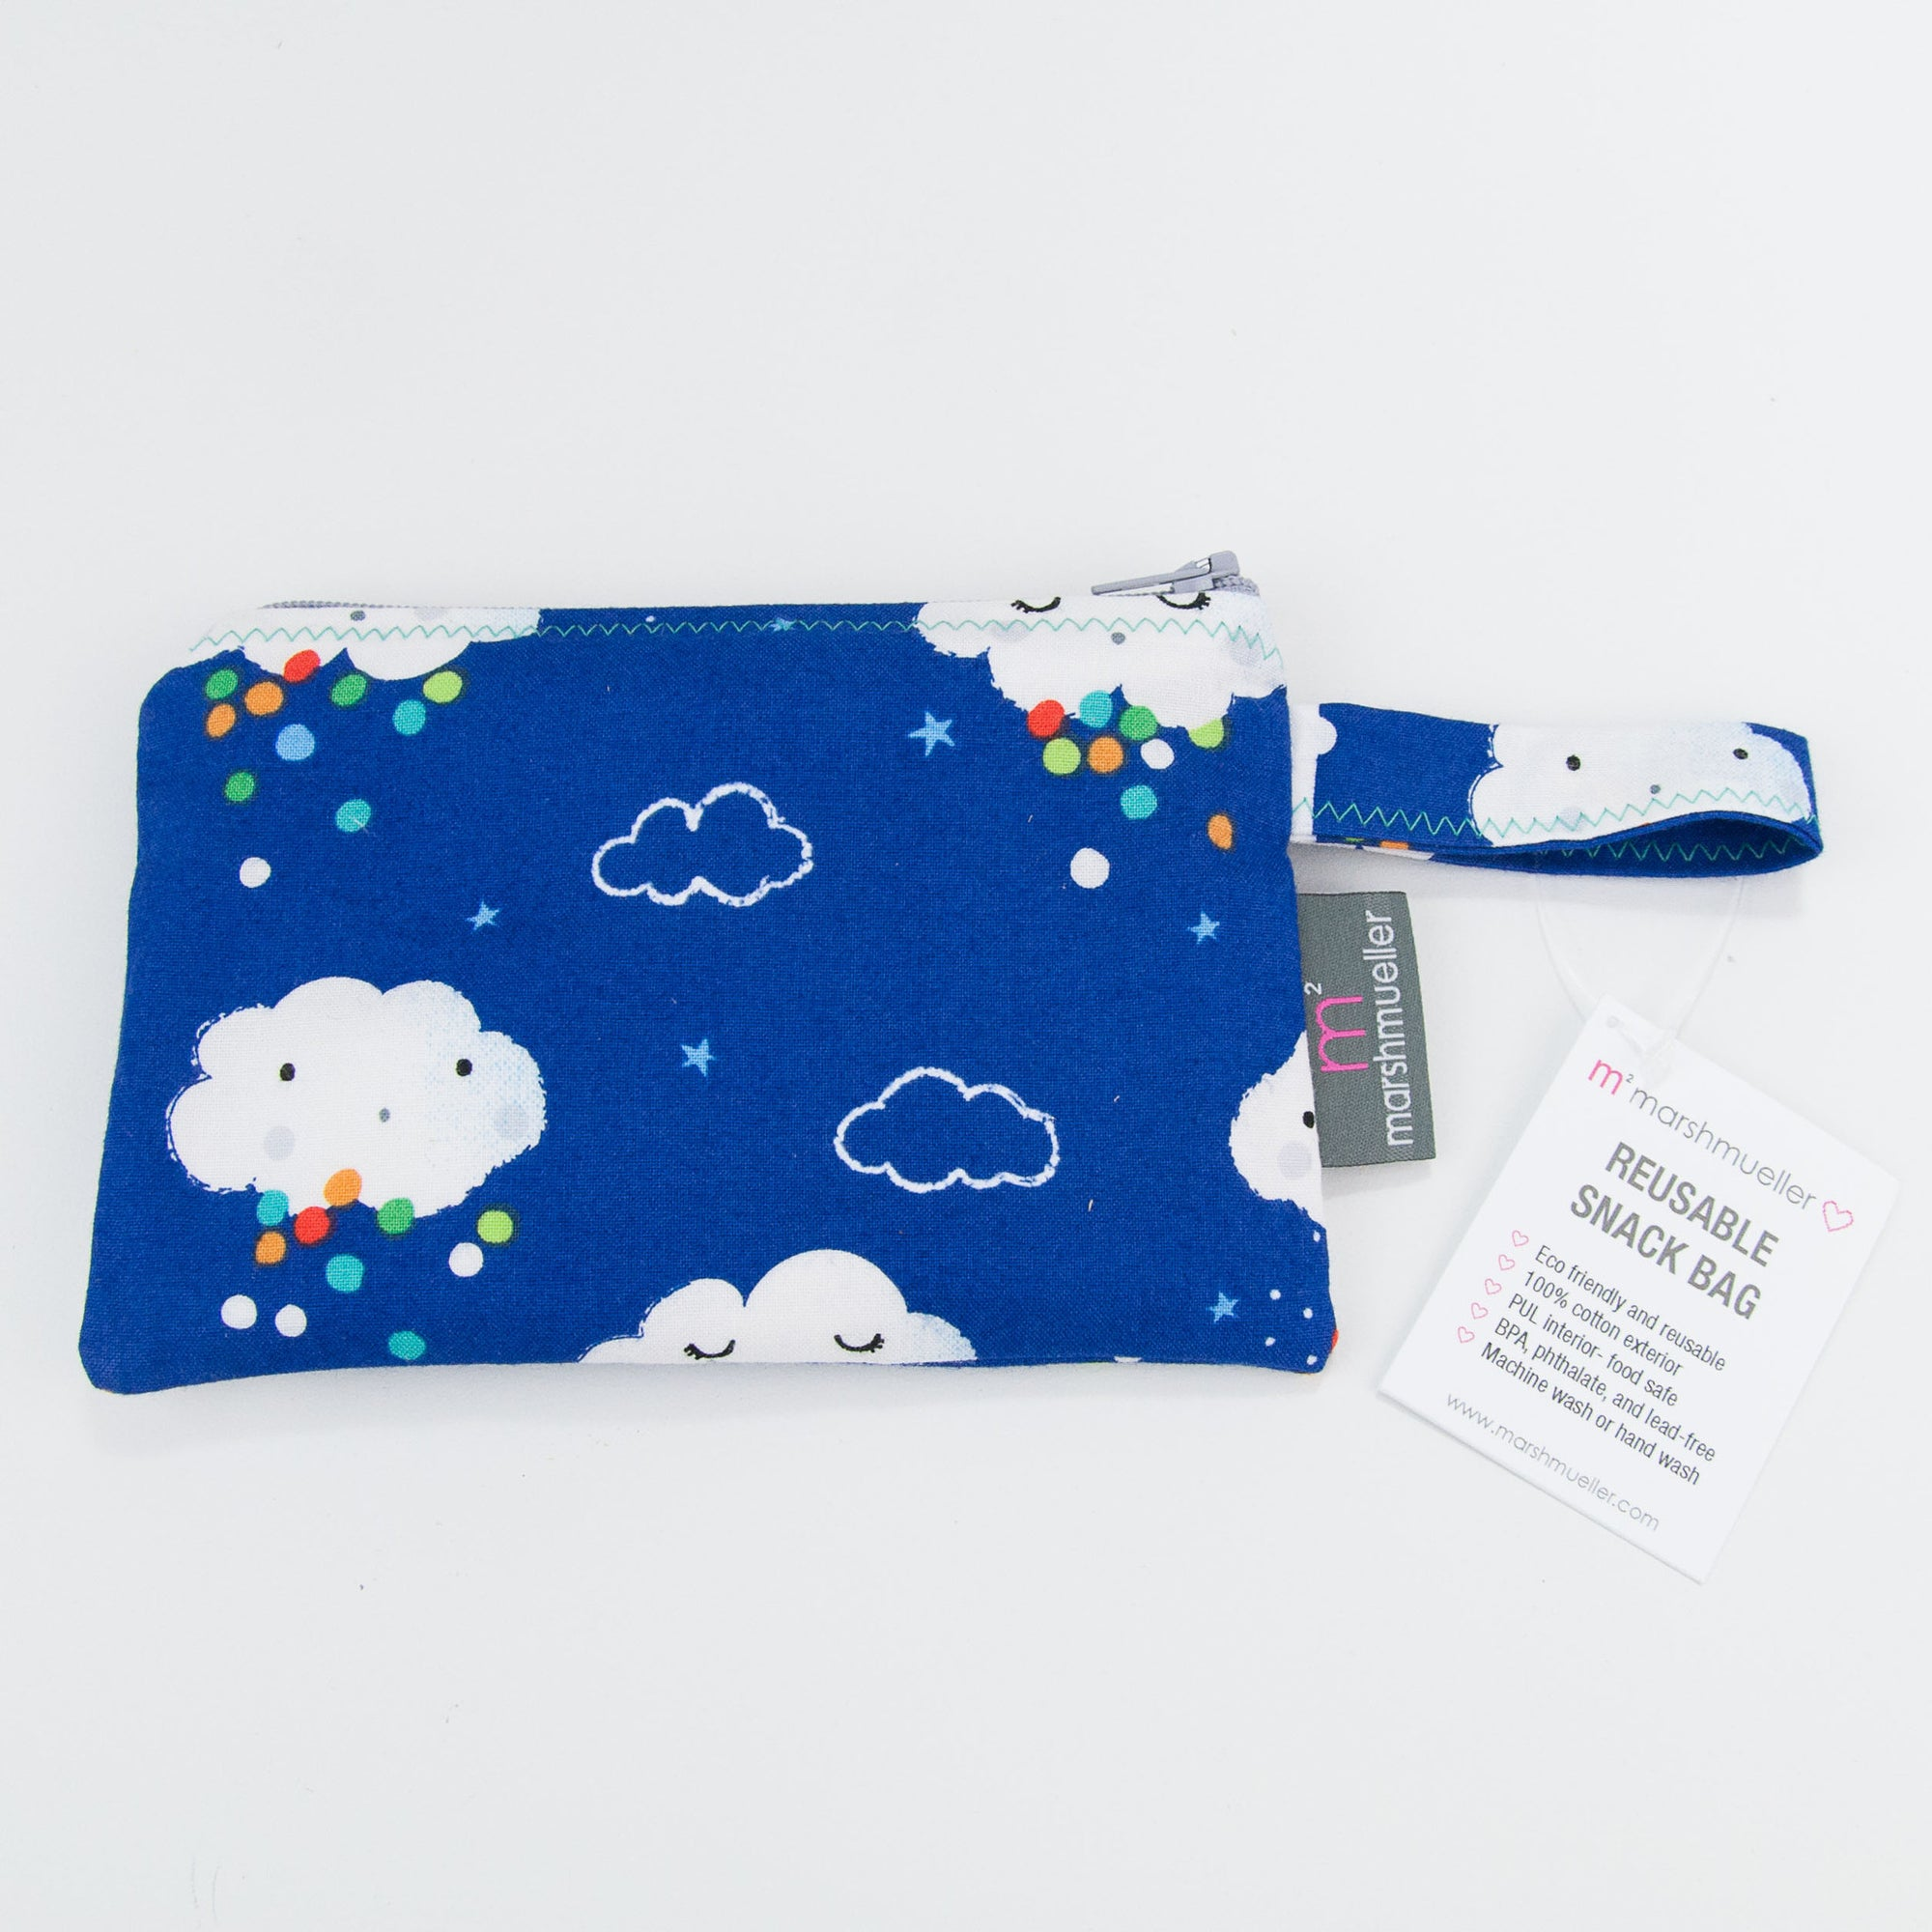 Blue Rain Clouds Reusable Snack Bag, Reusable Snack Bag, - MarshMueller